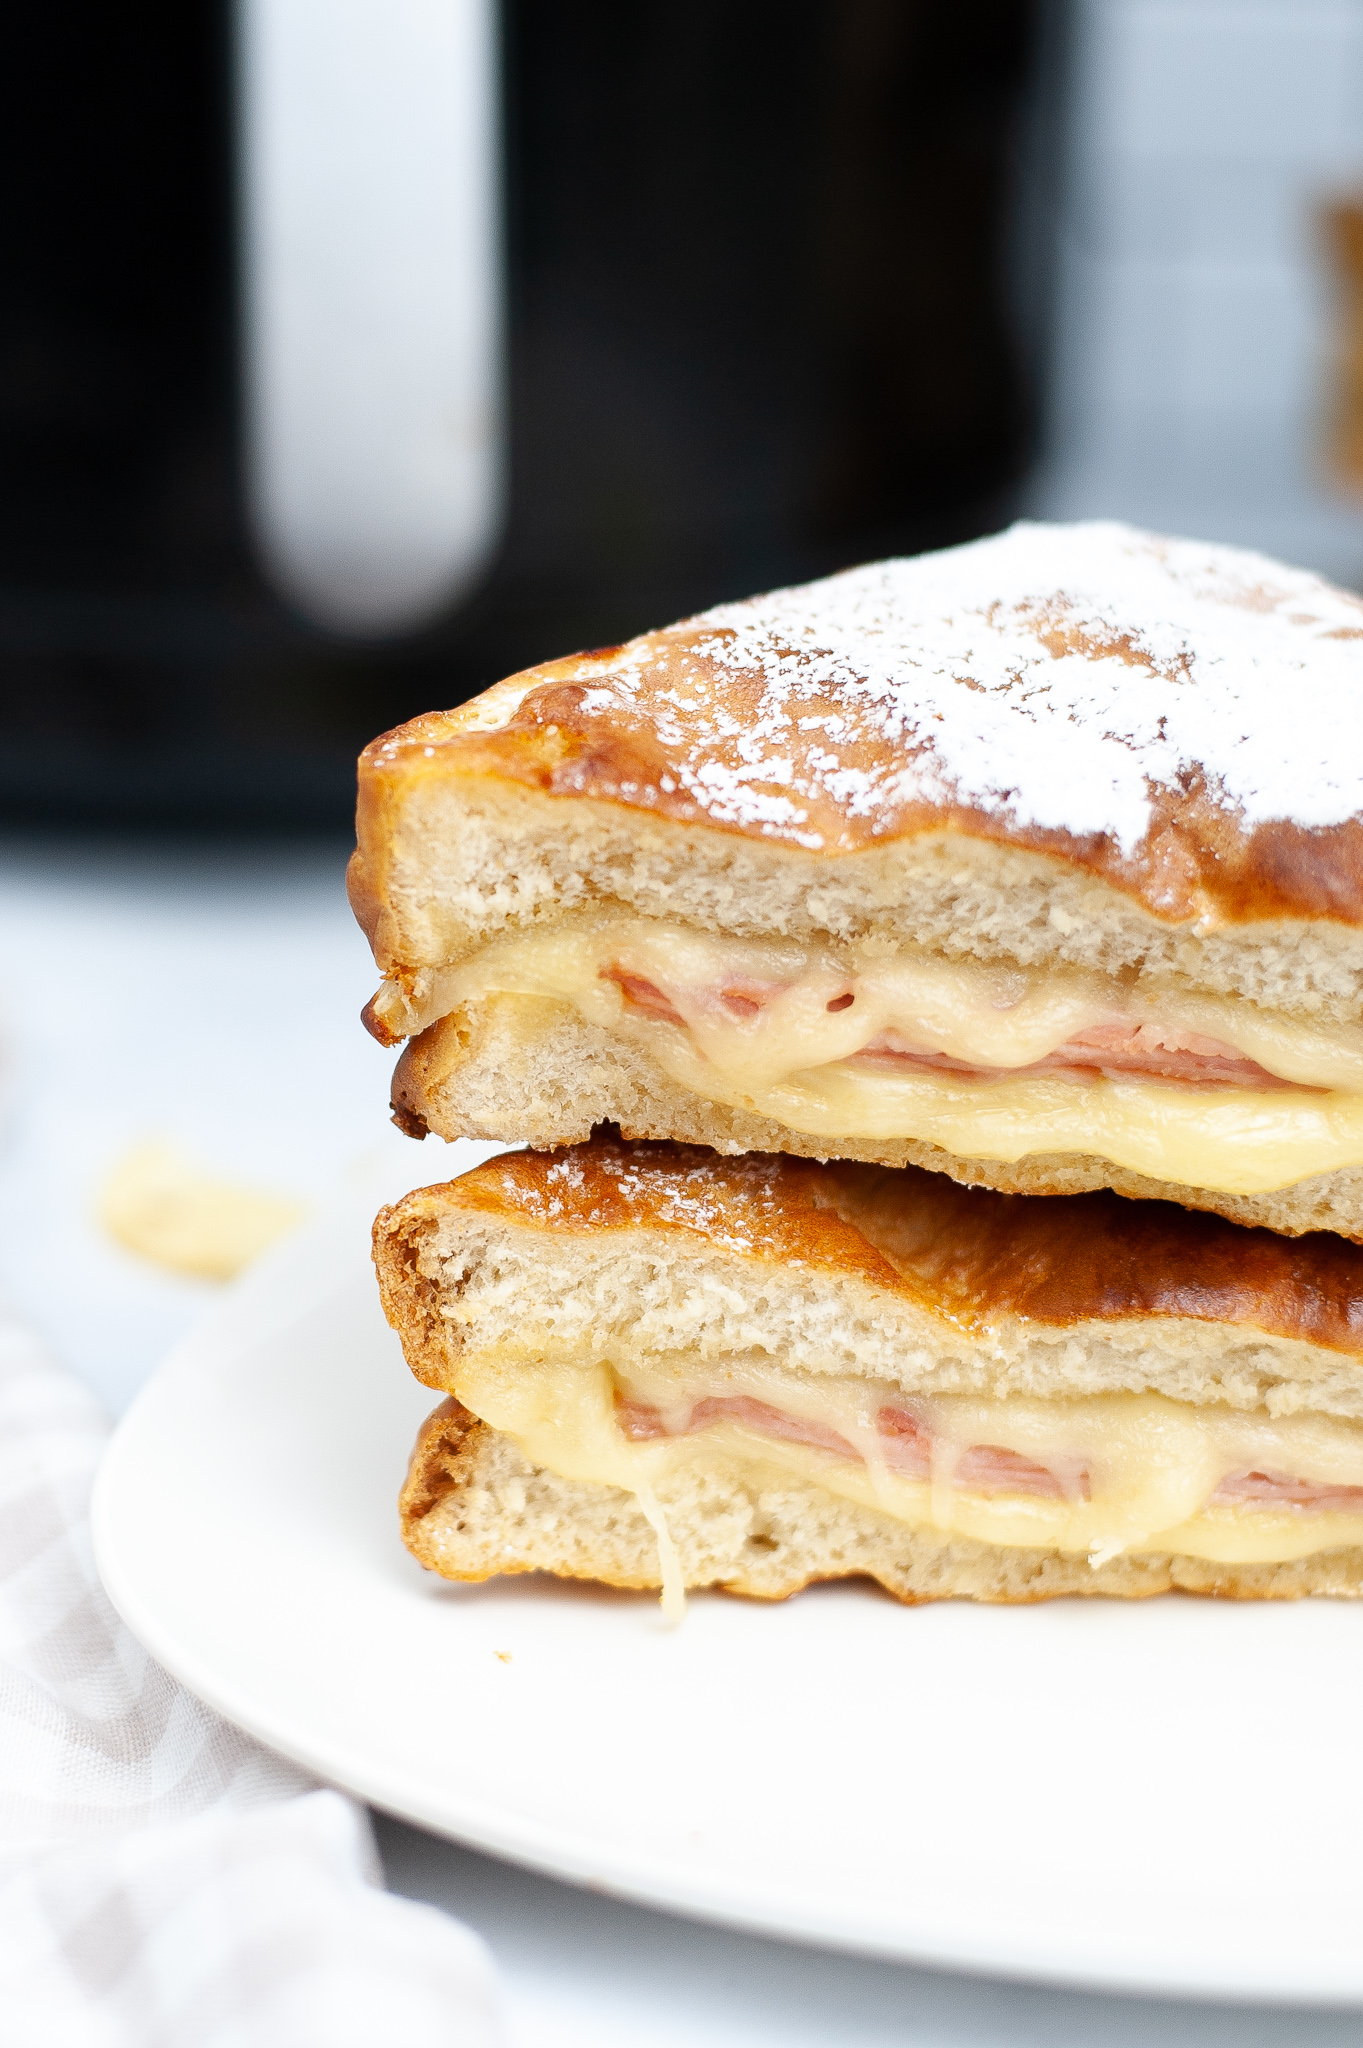 Side view of a stacked monte cristo sandwich on a plate.